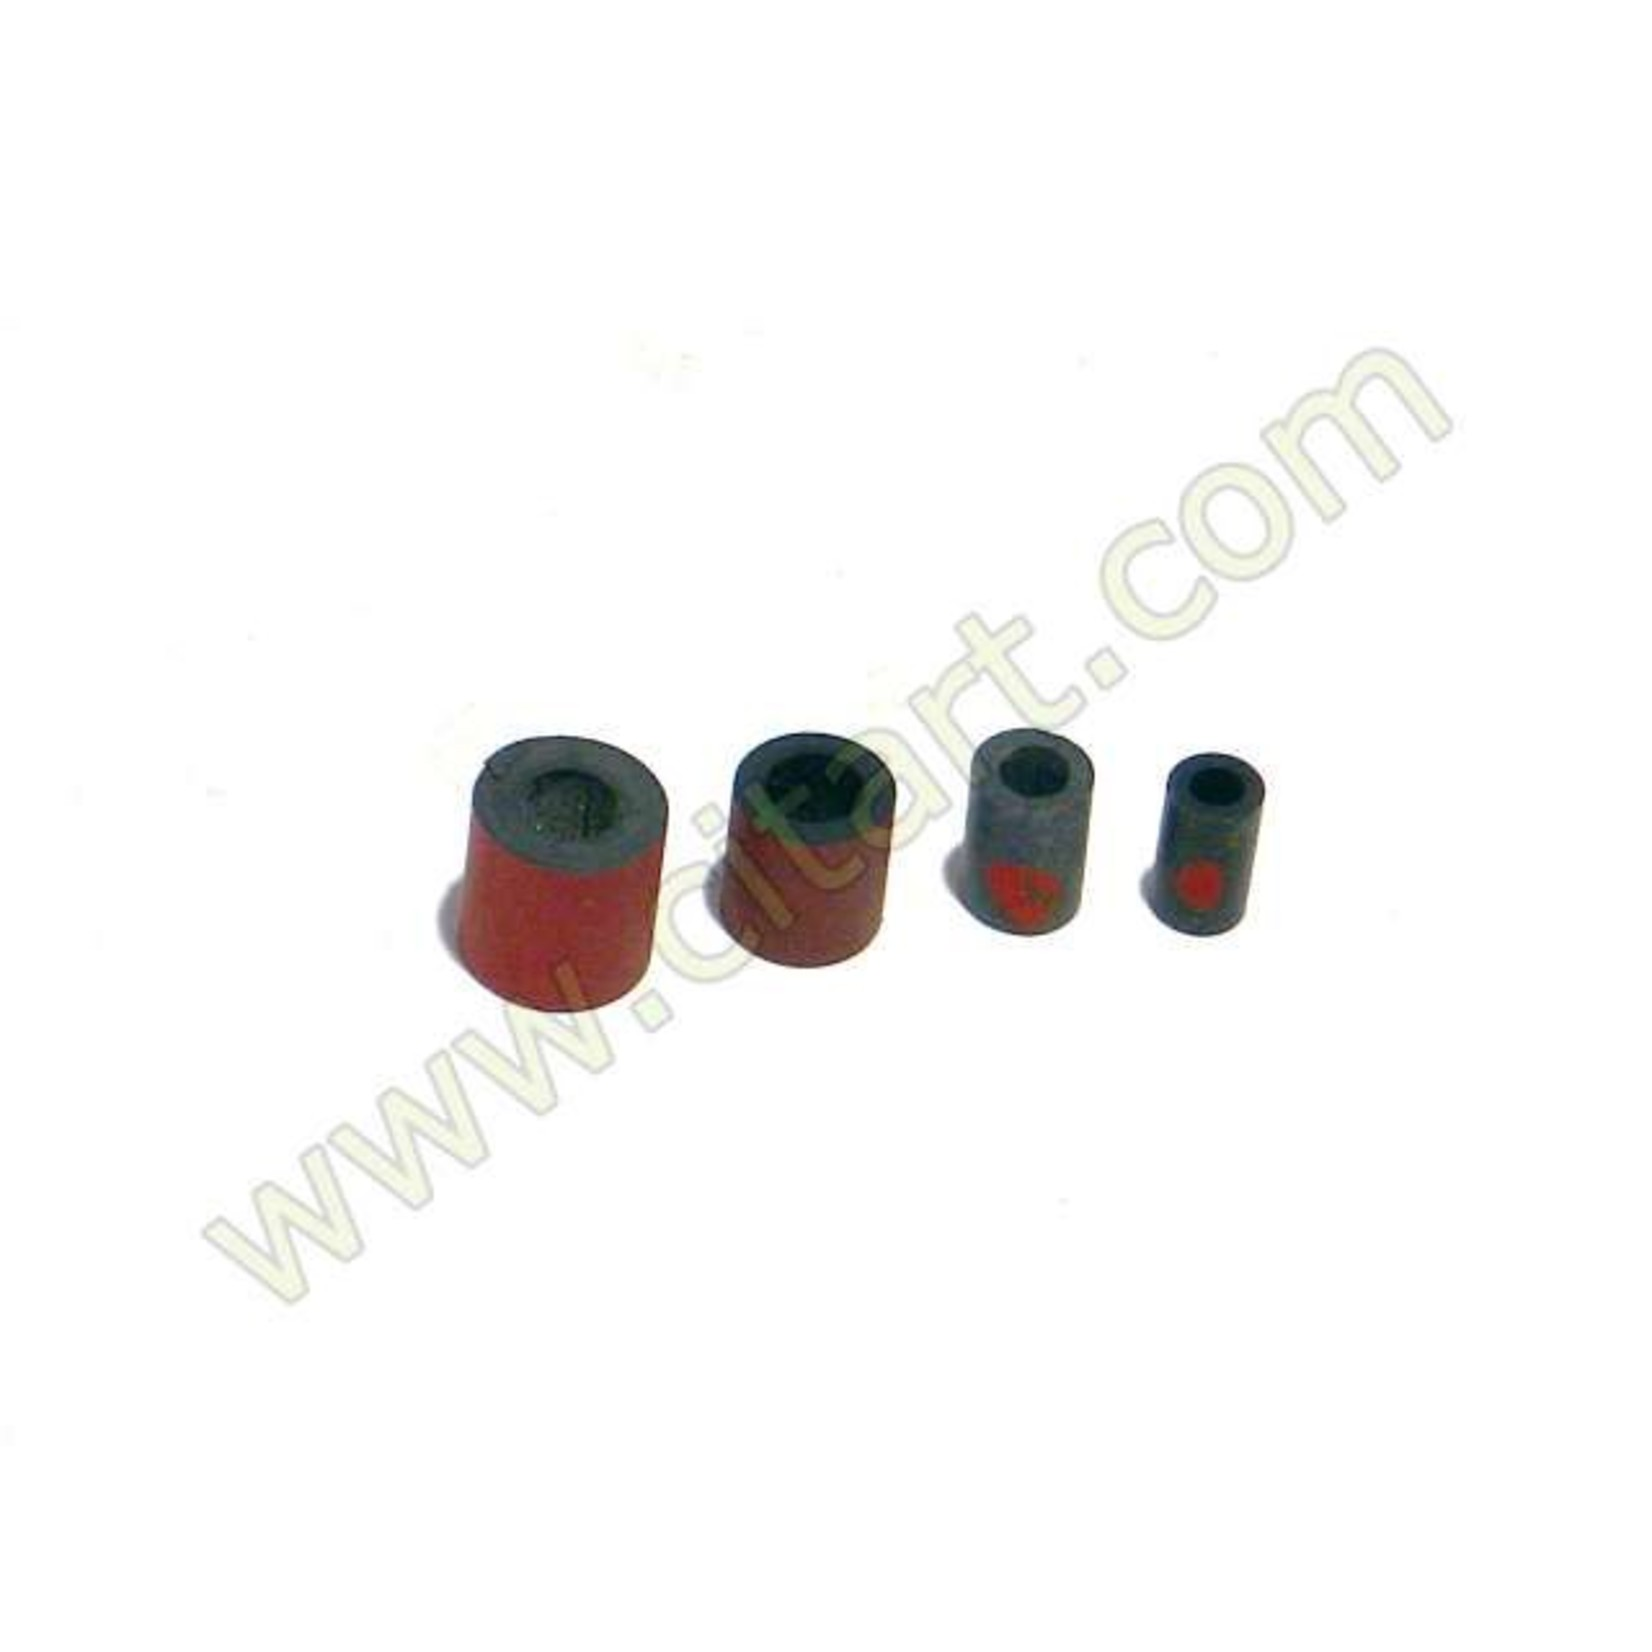 Joints tube hydraulique LHS 4,5mm Nr Org: 21589009